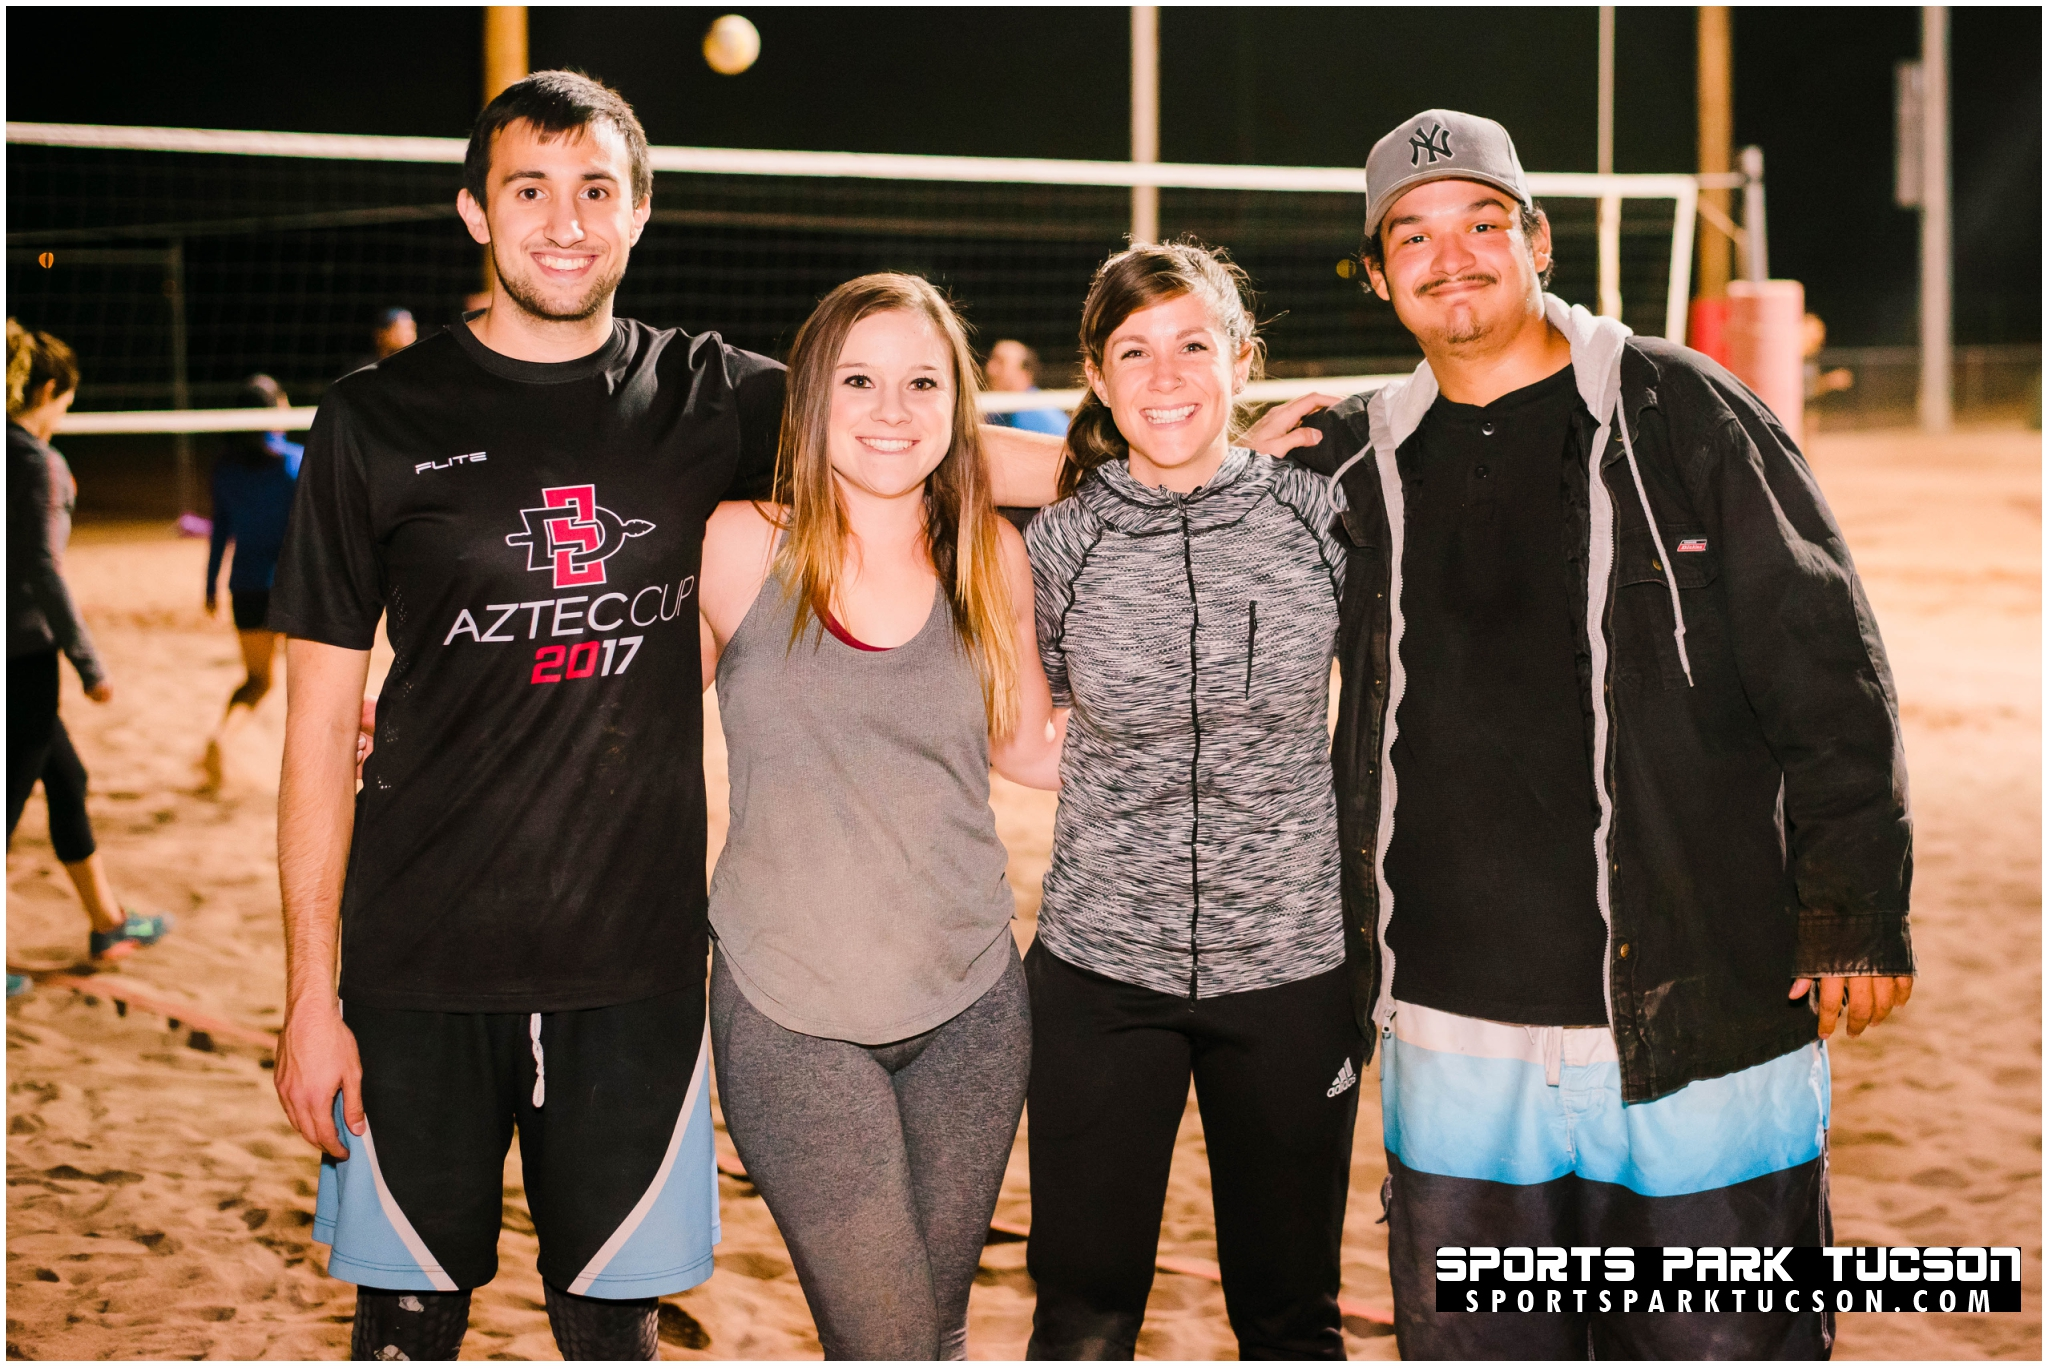 Volleyball Wed Co-ed 4 v 4 - Silver, Team: EZ Pass